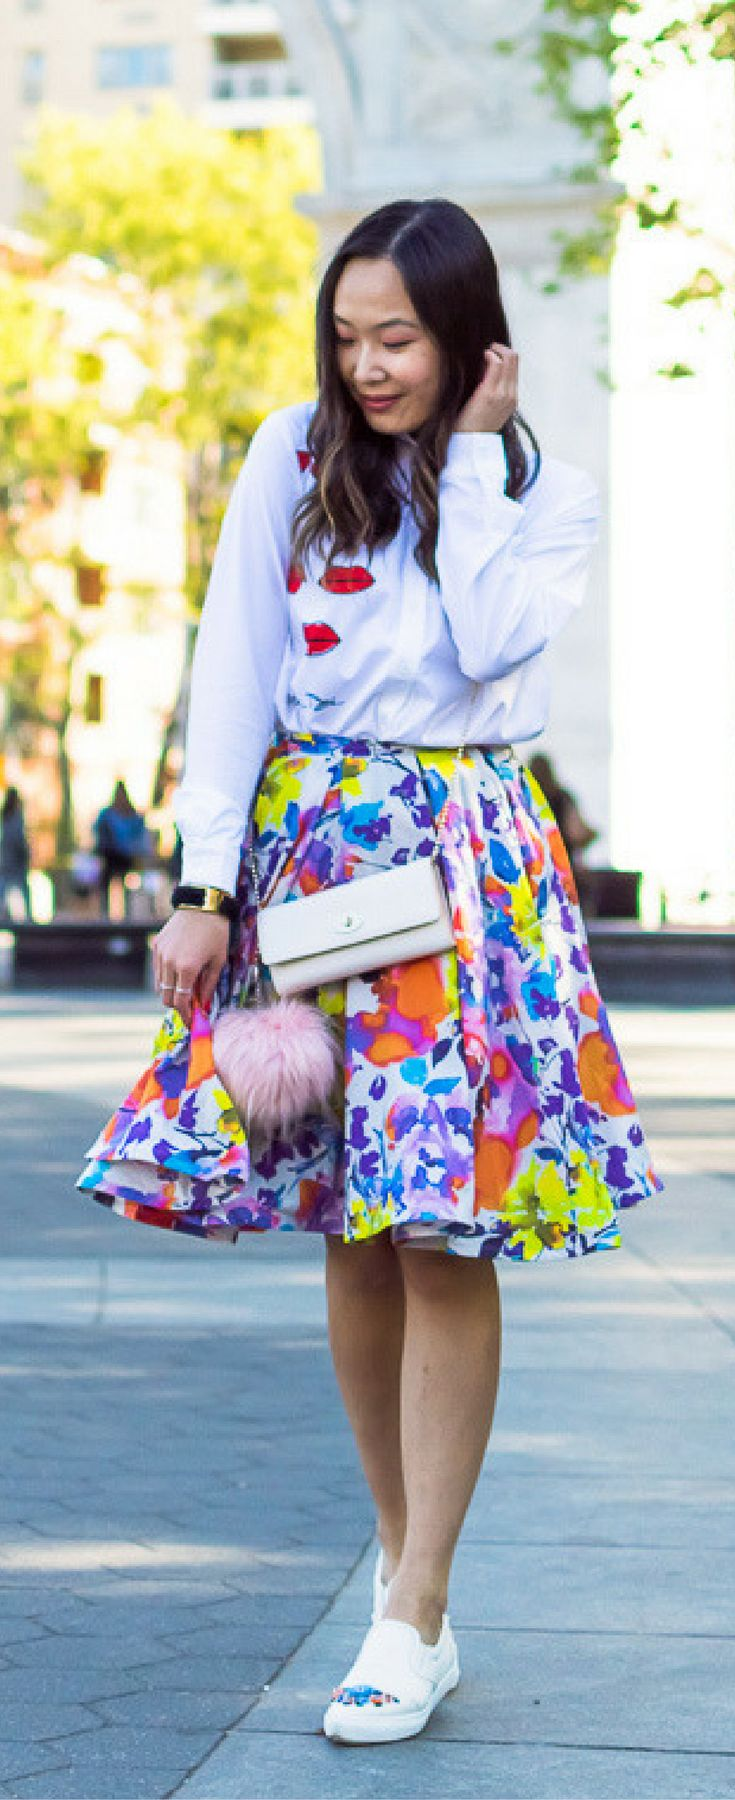 Flirty outfit classy, watercolor skirt outfit, lip print blouse, feminine outfit ideas. Get the look on www.layersofchic.com